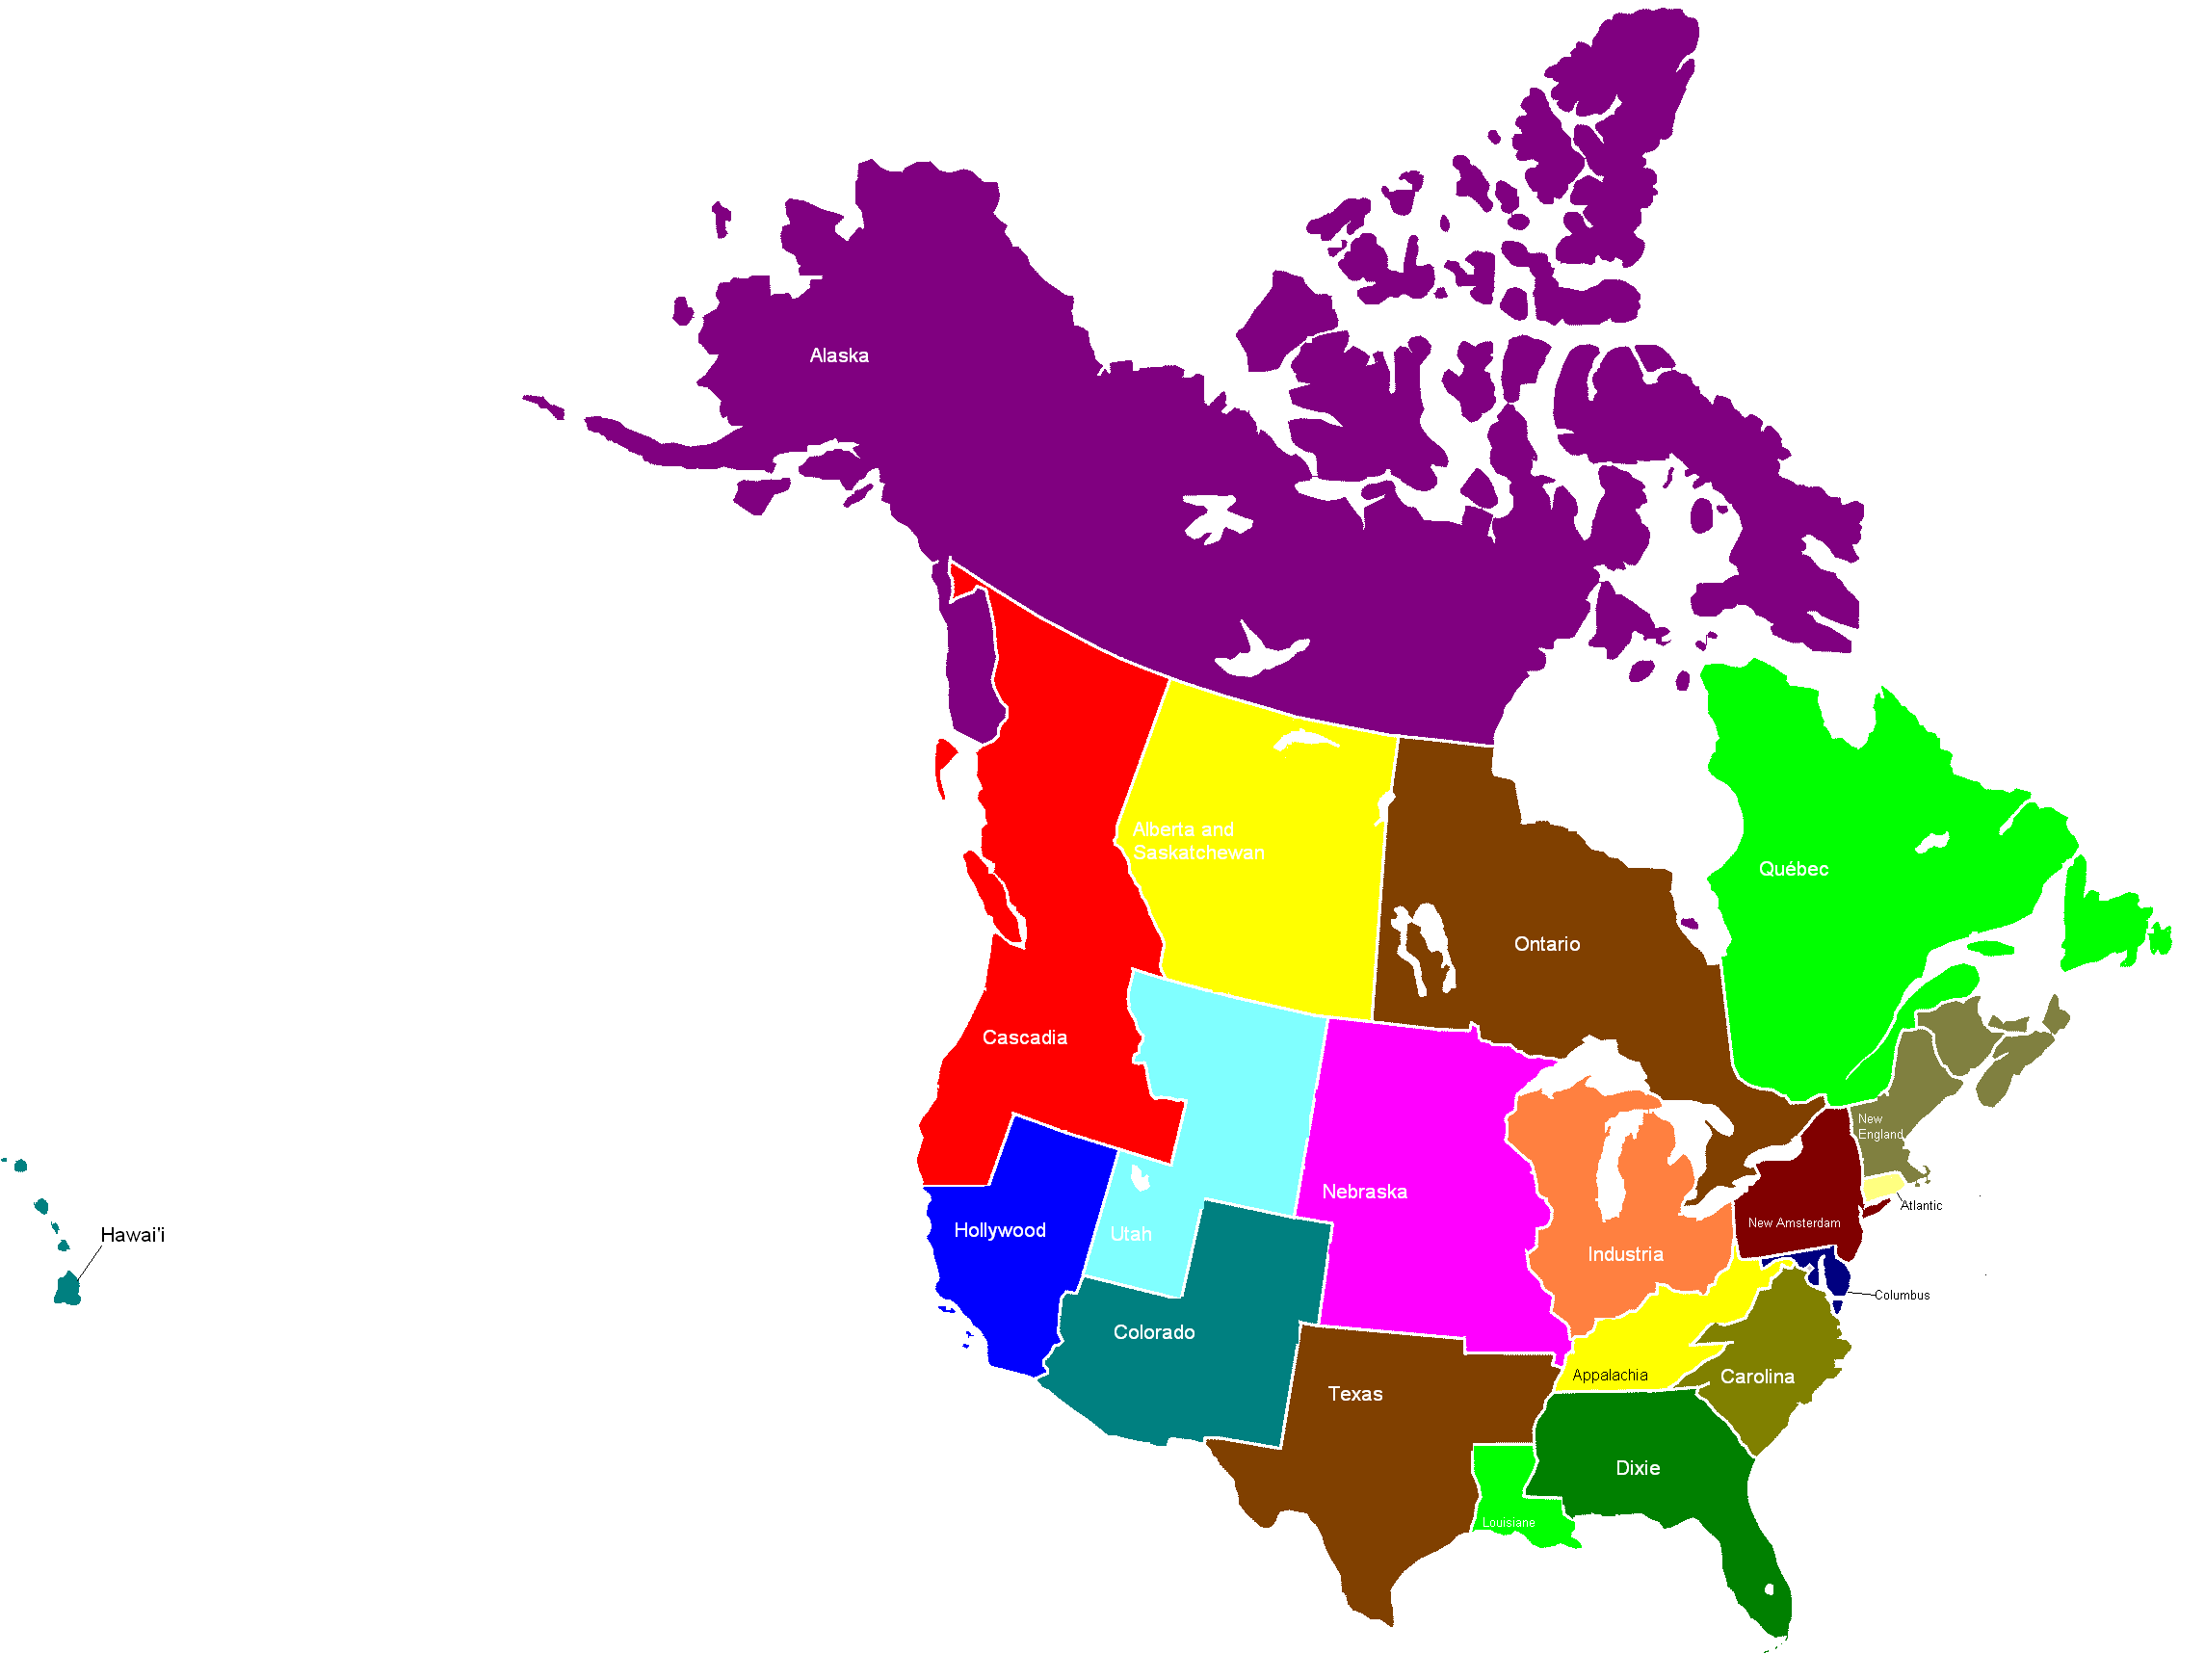 Best Images About Alternate North America Maps On Pinterest - Canada north america map